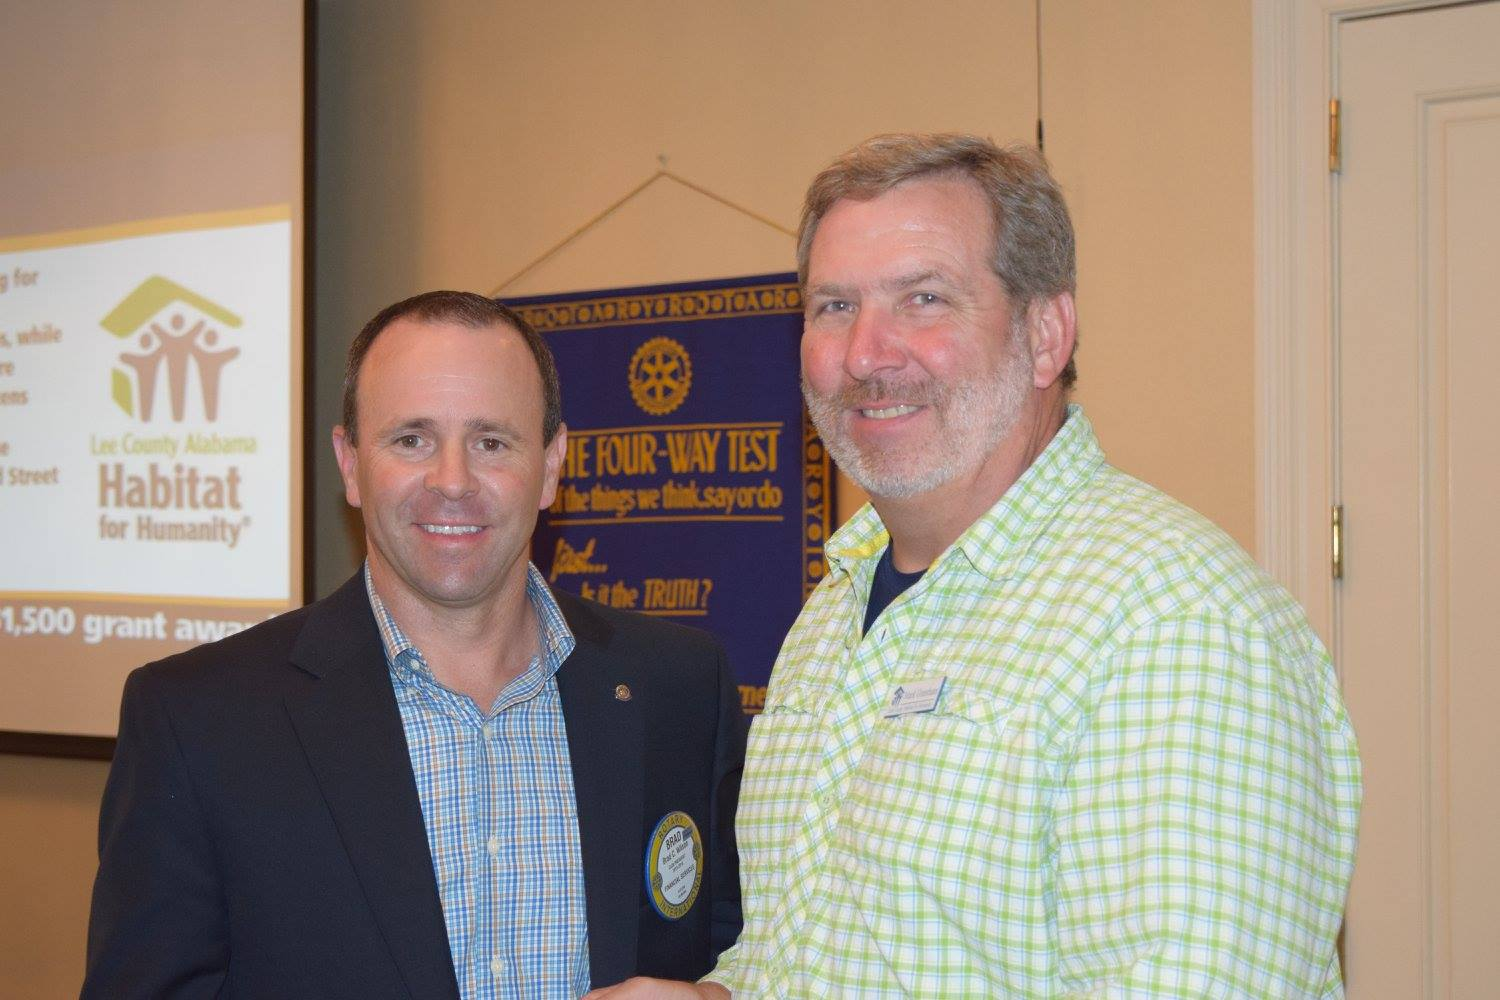 habitat for humanity 2016 auburn rotary grants